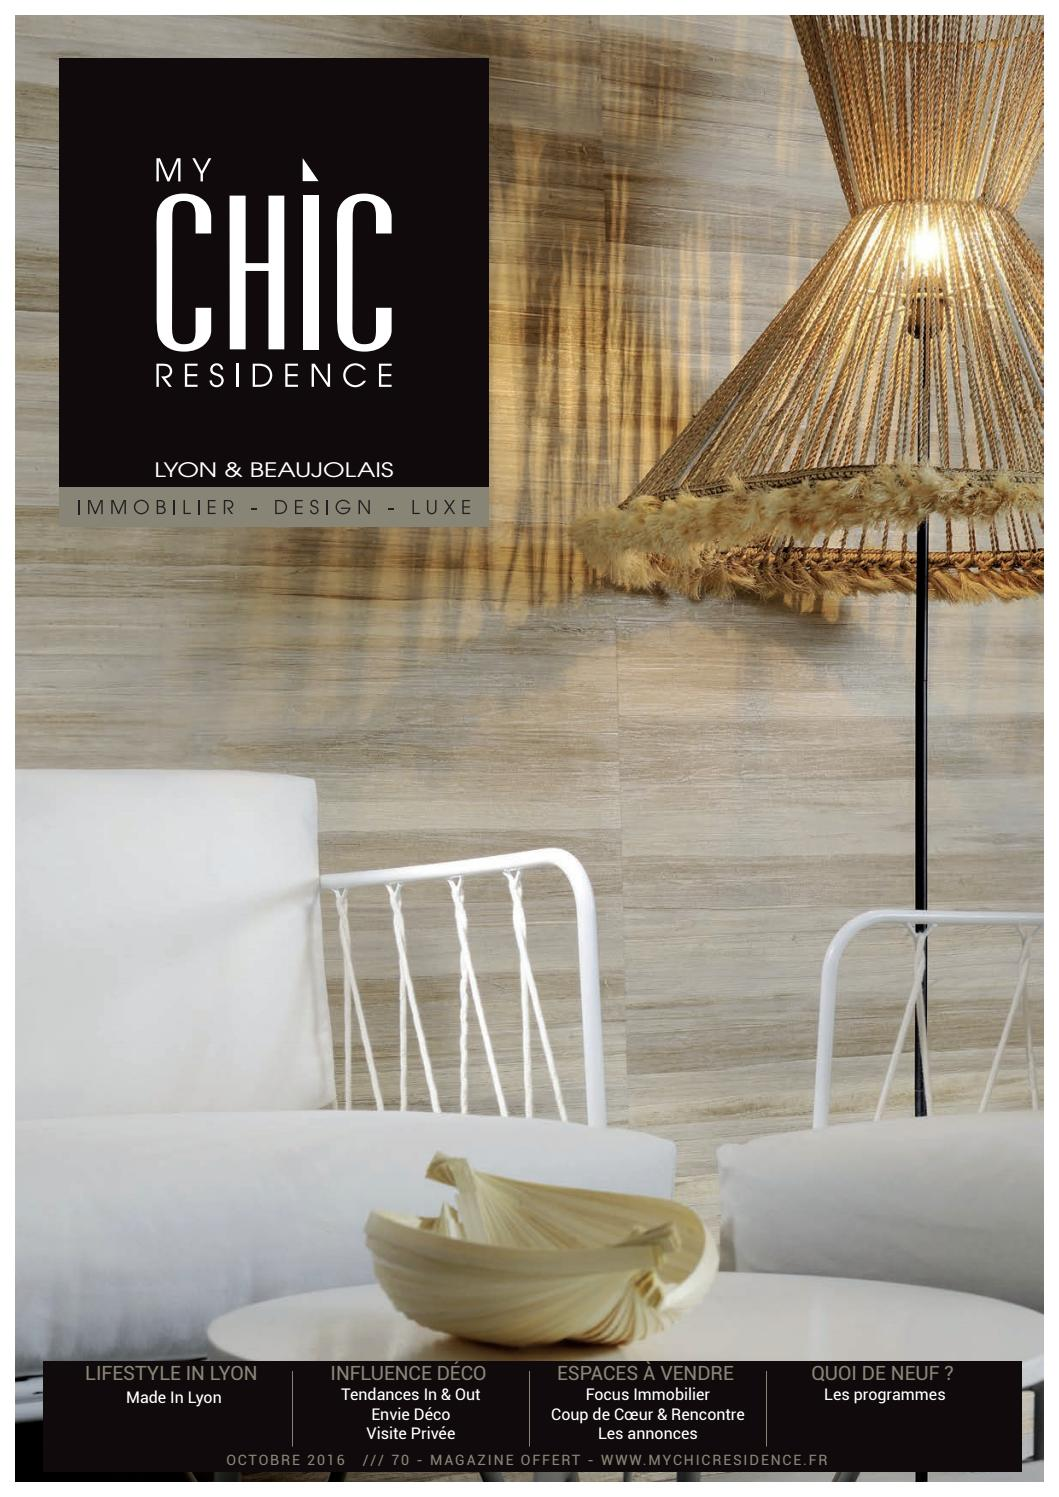 My Chic Residence 70 Octobre 2016 By My Chic Residence Issuu